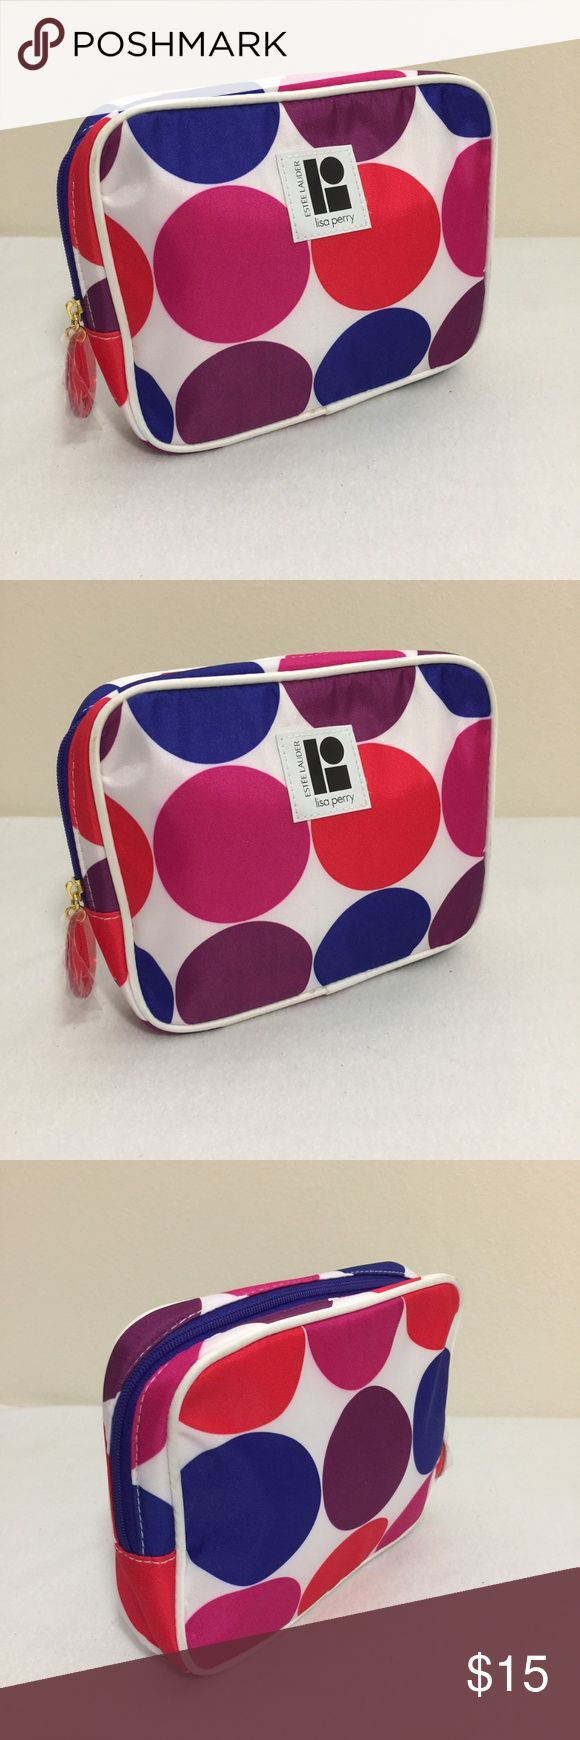 """Estee Lauder Lisa Perry Make Up pouch Multicolor Estee Lauder Lisa Perry Polka Dot Print Make Up pouch Cosmetic bag 6"""" height Measurements: Bag Height: 6"""" Bag Depth: 1 1/2"""" Bag width: 7 1/4"""" Condition: NEAR NEW  We try to describe the product true to its condition. However, personal opinions about the product condition may vary. Please message us with any questions Estee Lauder Makeup"""